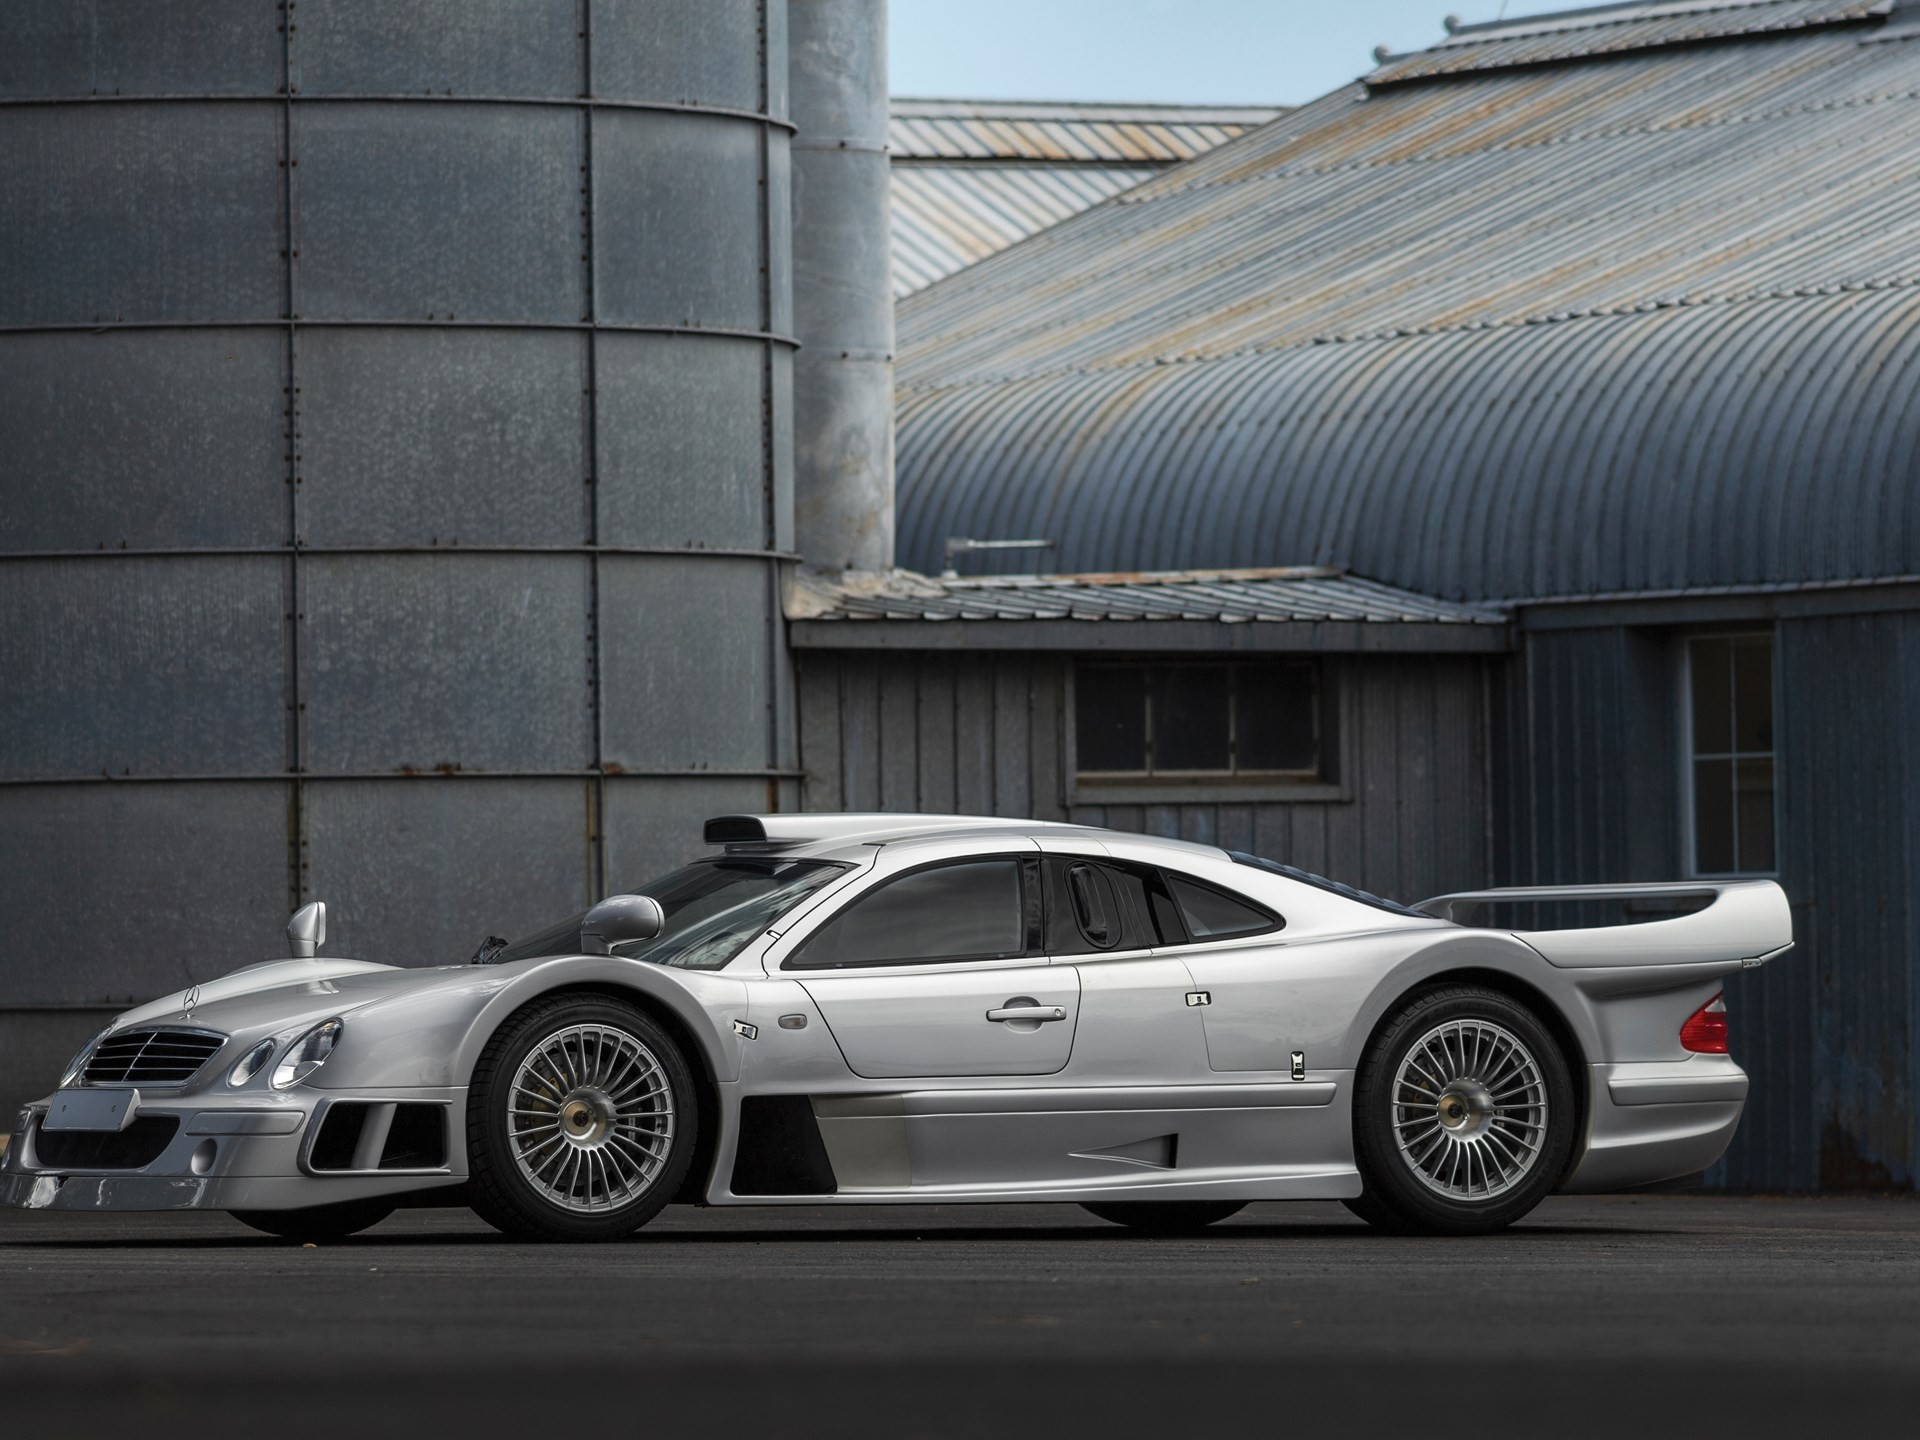 mercedes benz clk gtr heading to auction with 5 250 000. Black Bedroom Furniture Sets. Home Design Ideas